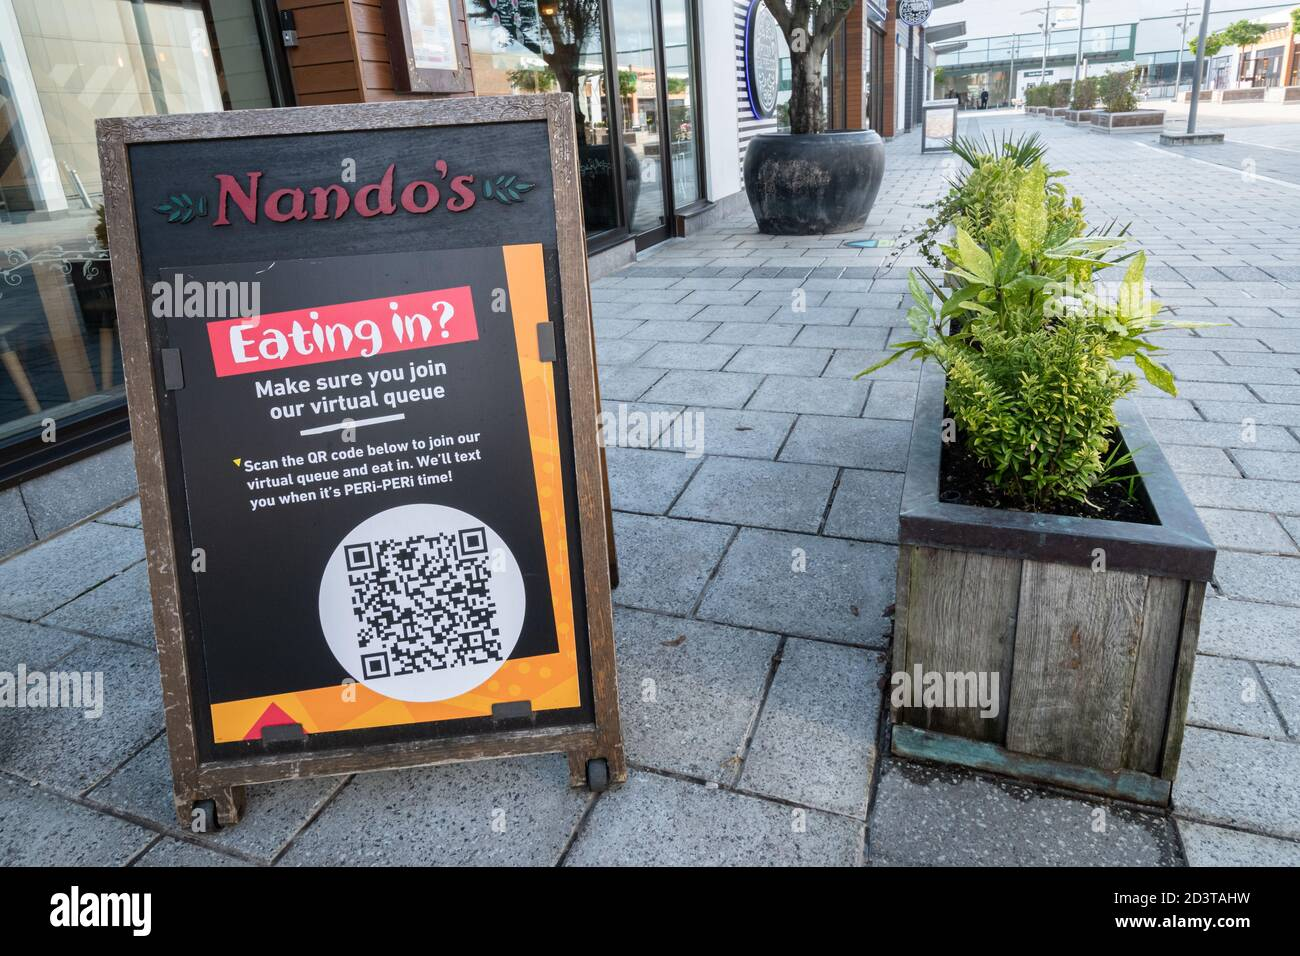 A QR code or matrix barcode outside Nando's restaurant to be scanned with a mobile phone app to join the virtual queue, UK, October 2020 Stock Photo